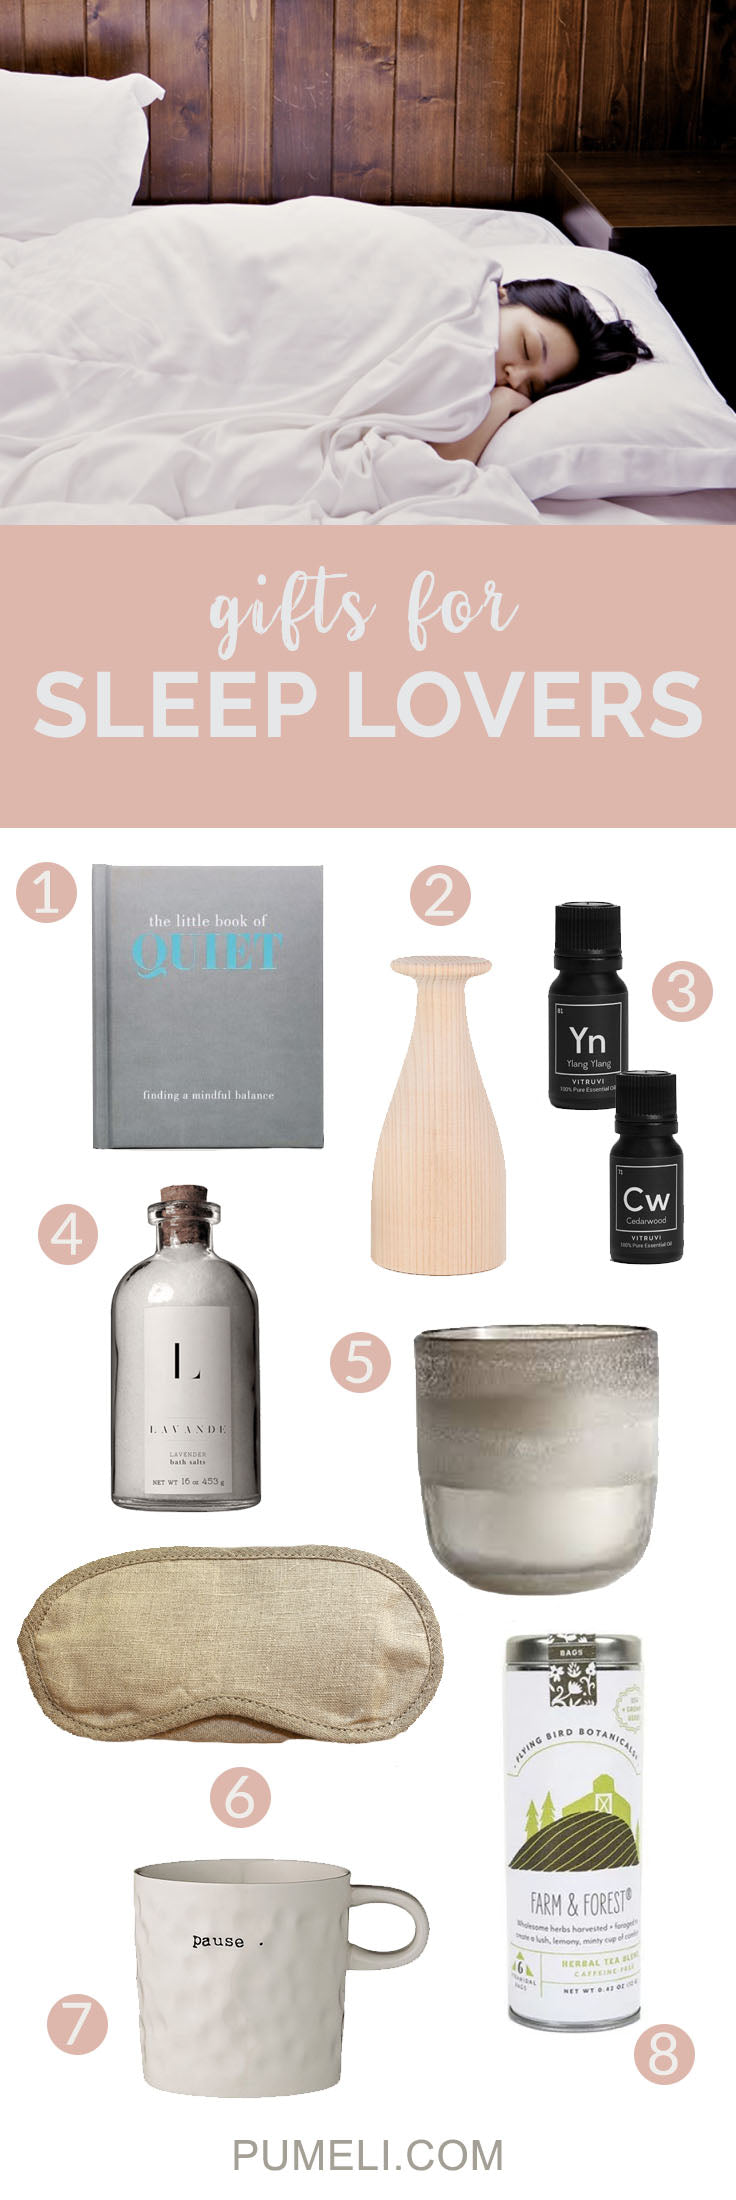 Gifts for Sleep Lovers